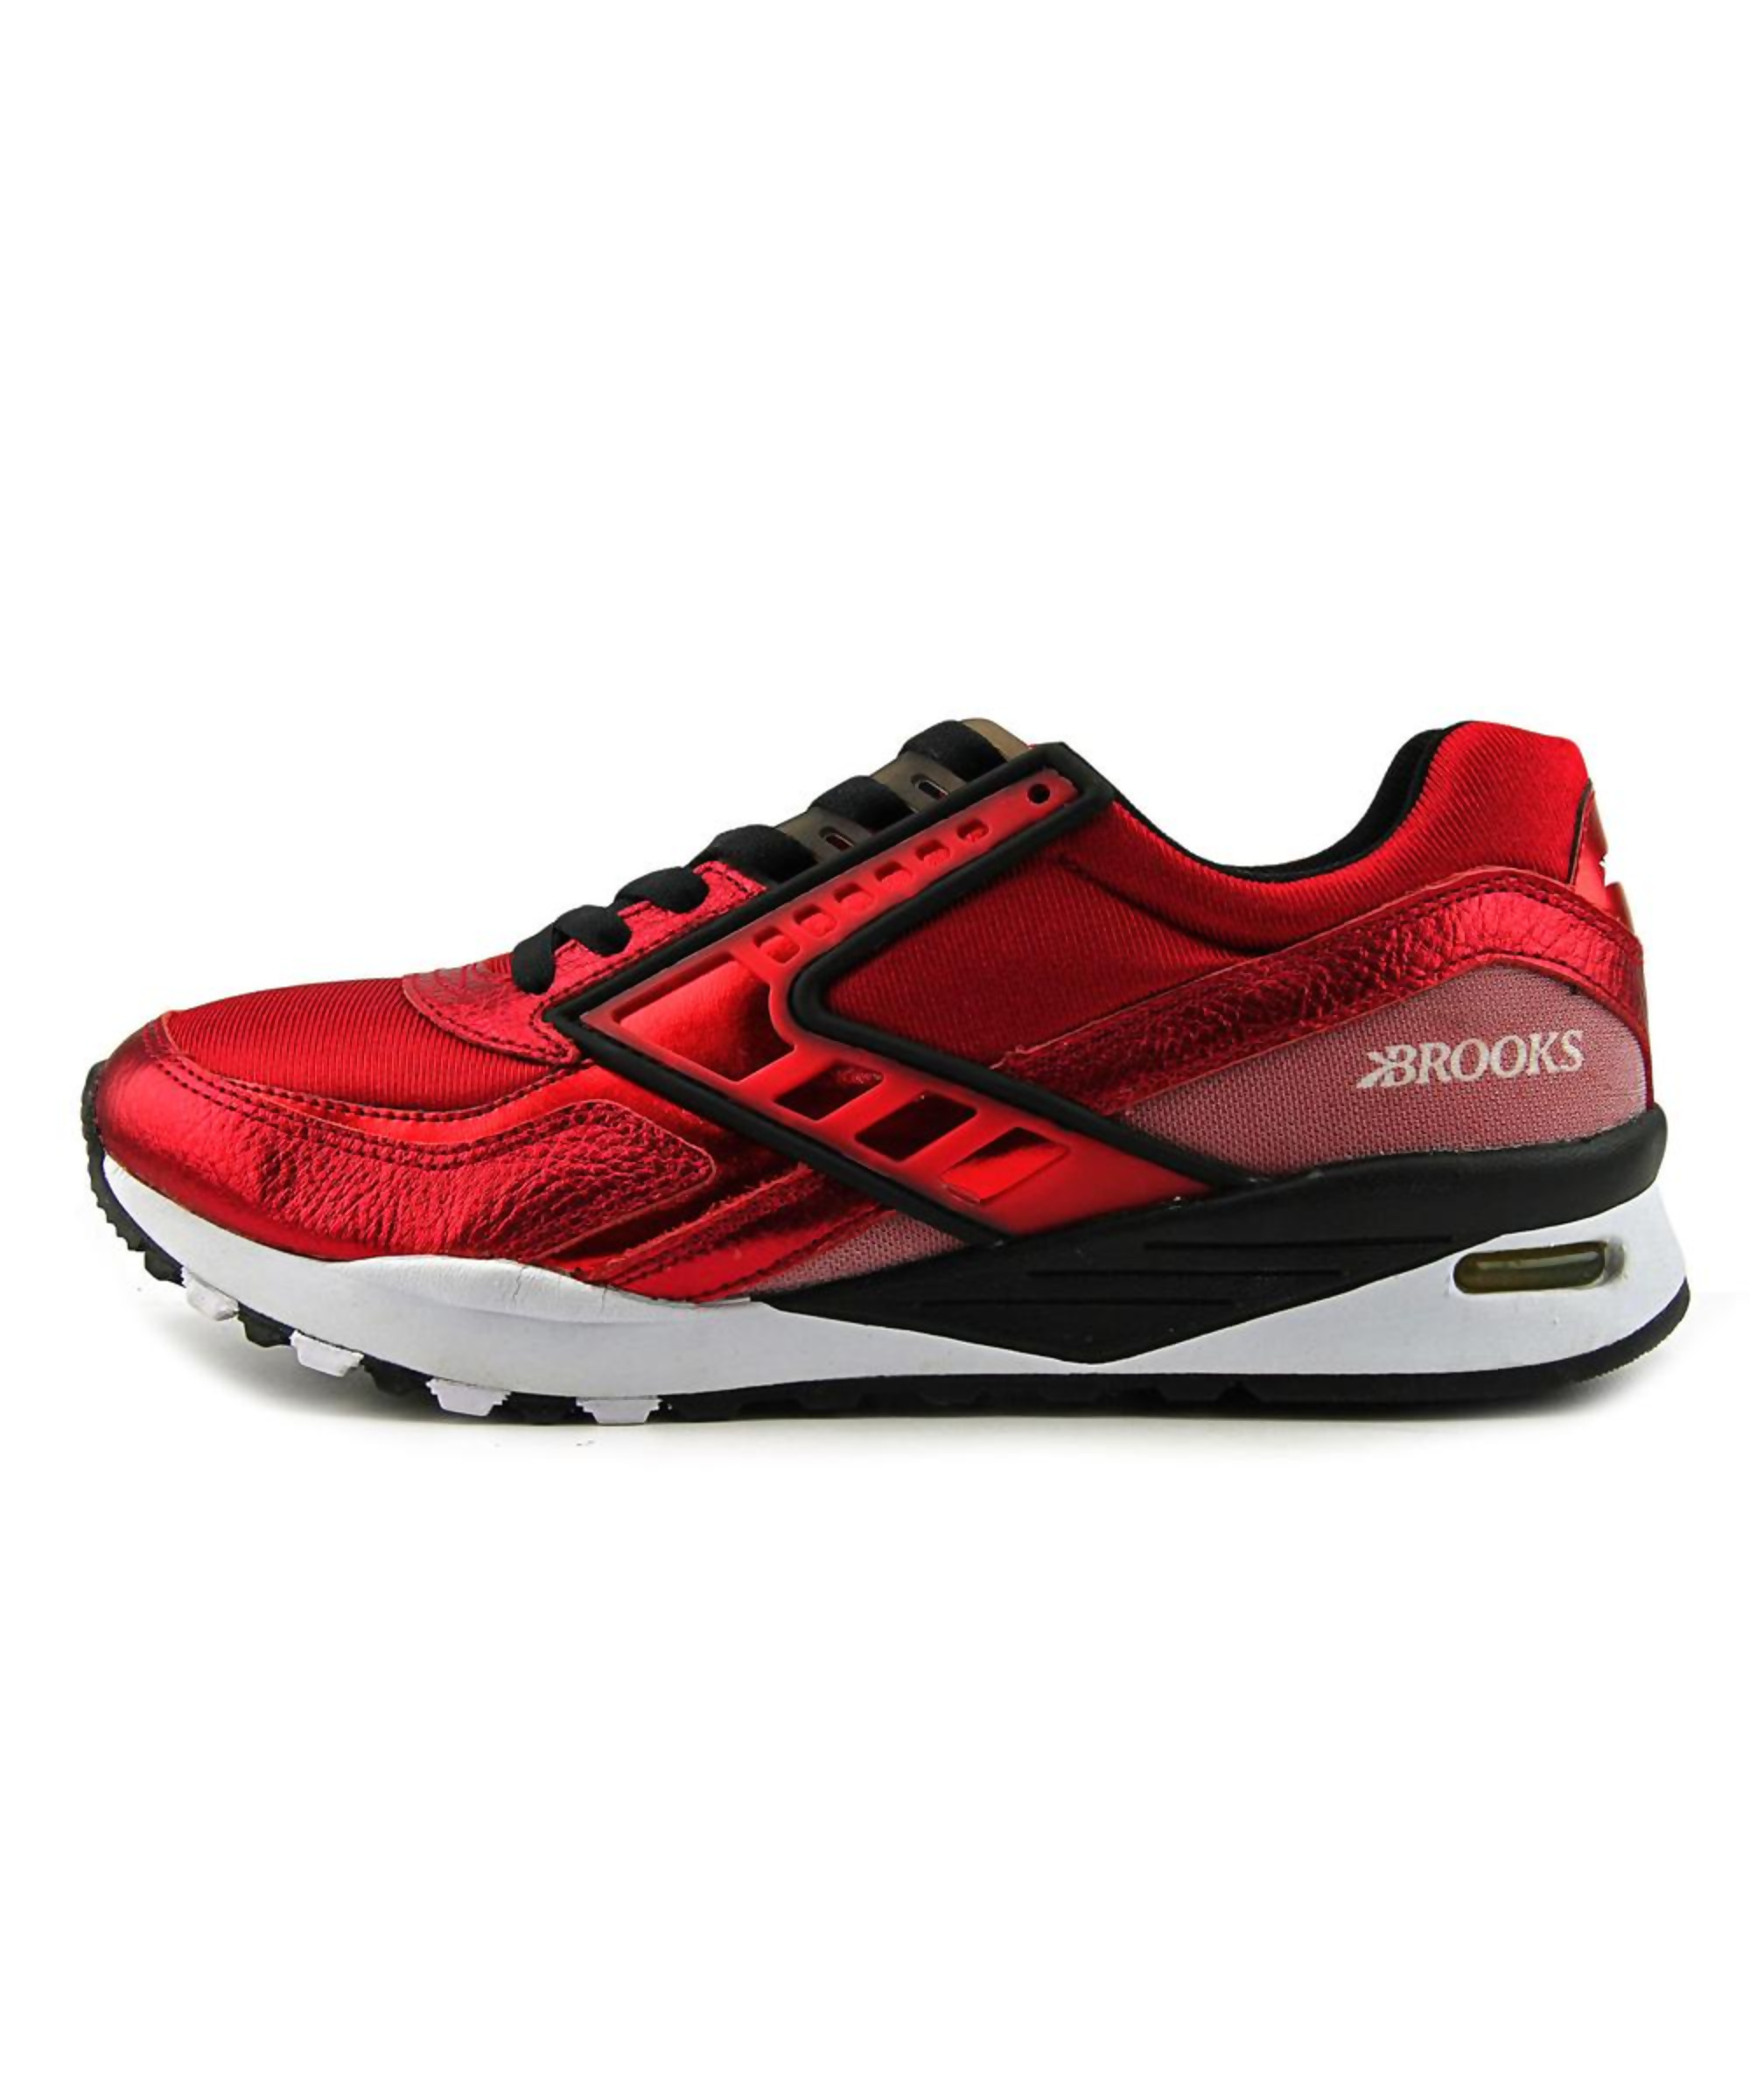 日本未入荷 Brooks Regent Men Round Toe Syn... 送料関税込